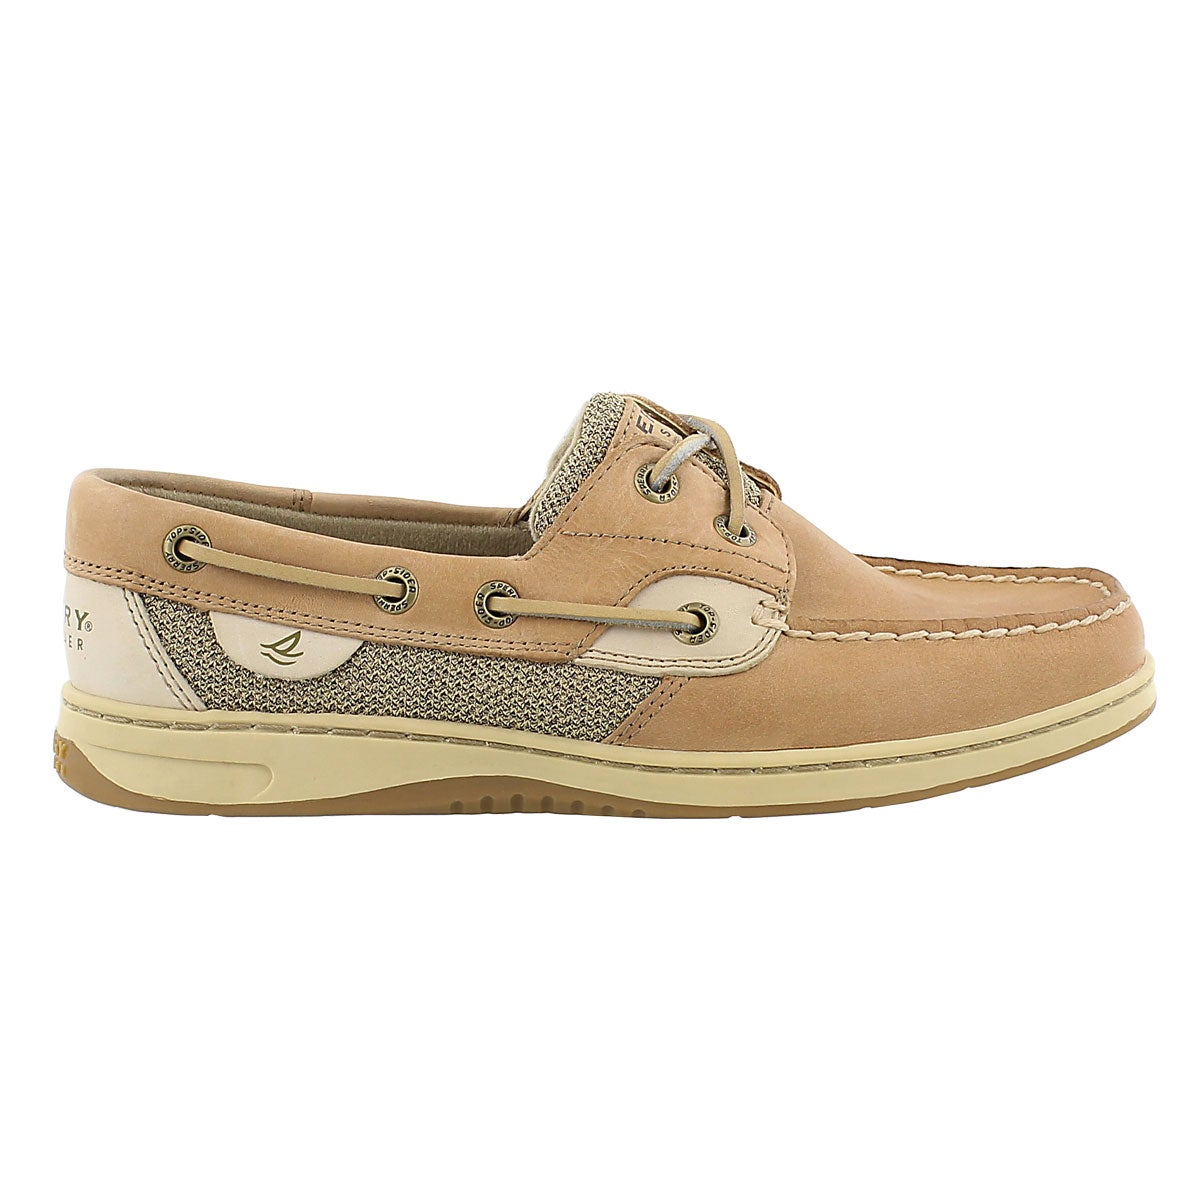 Lds BLUEFISH 2-eye linen/oat boat shoe